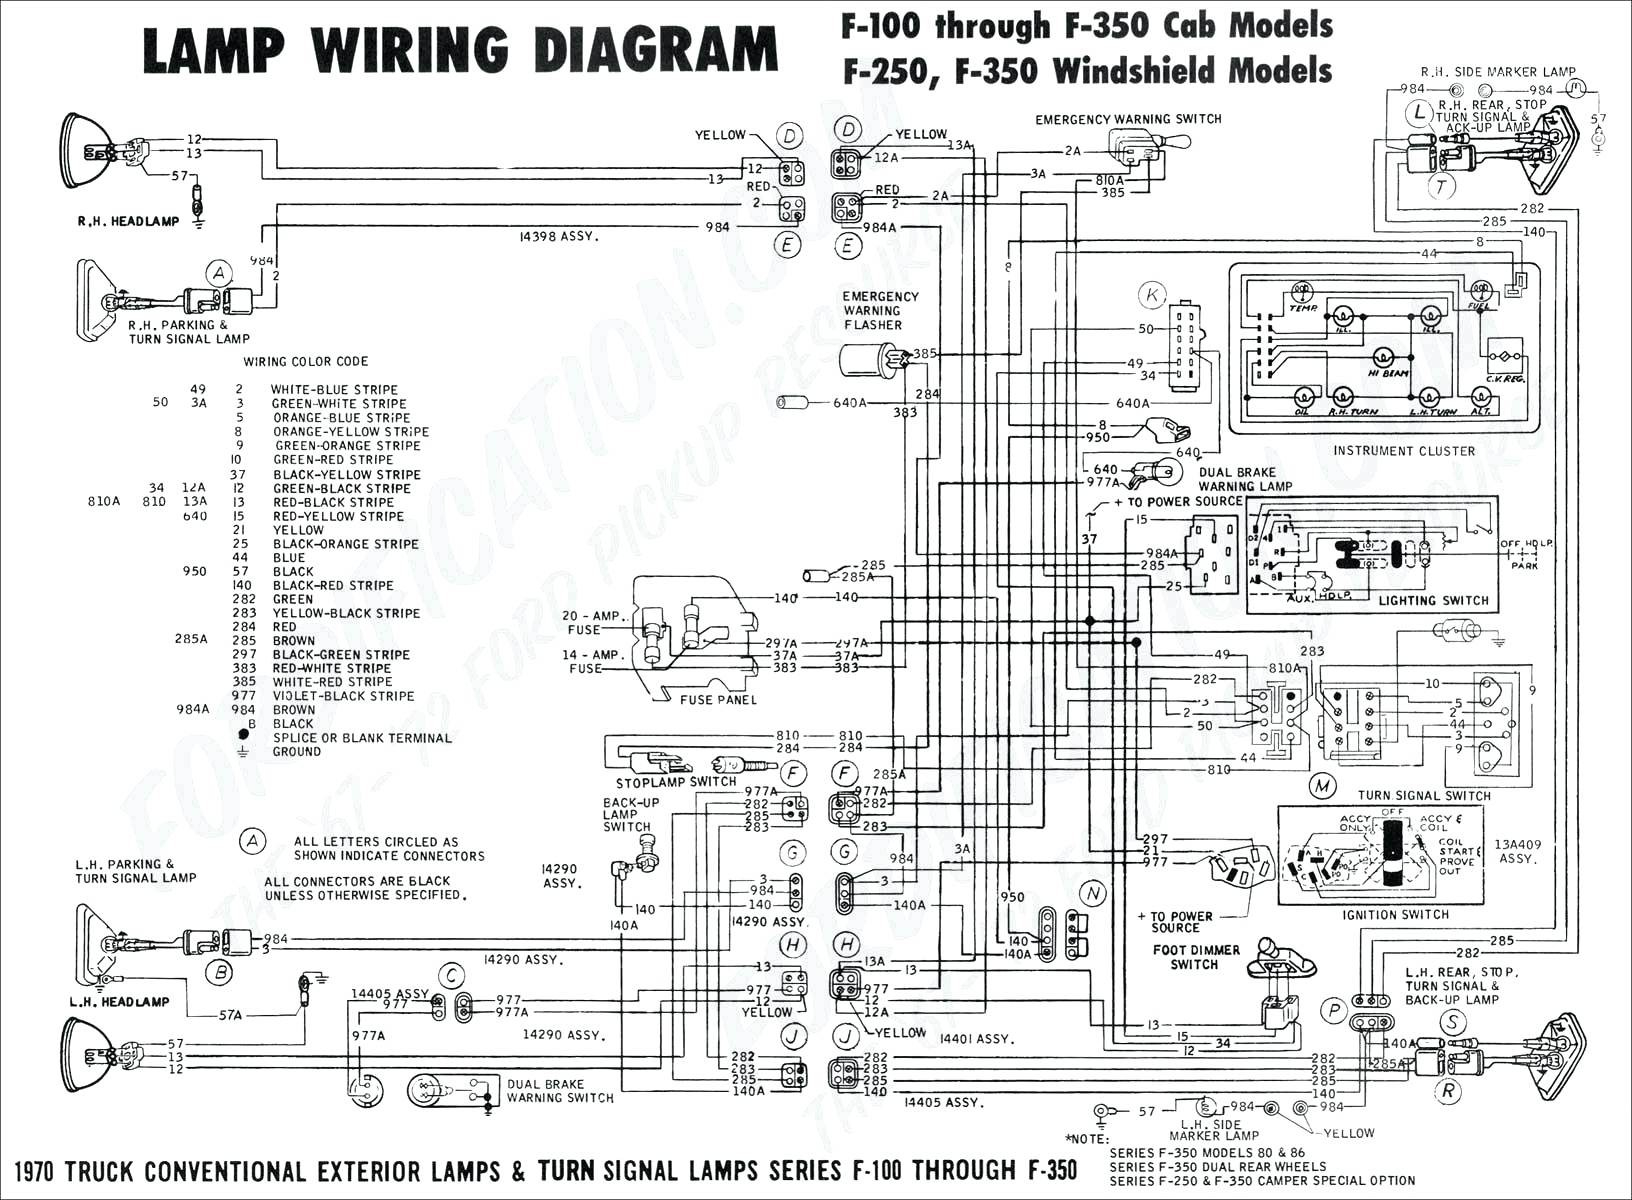 rv s power wiring diagram ed 6147  heartlan 50 amp wiring schematic free diagram  heartlan 50 amp wiring schematic free